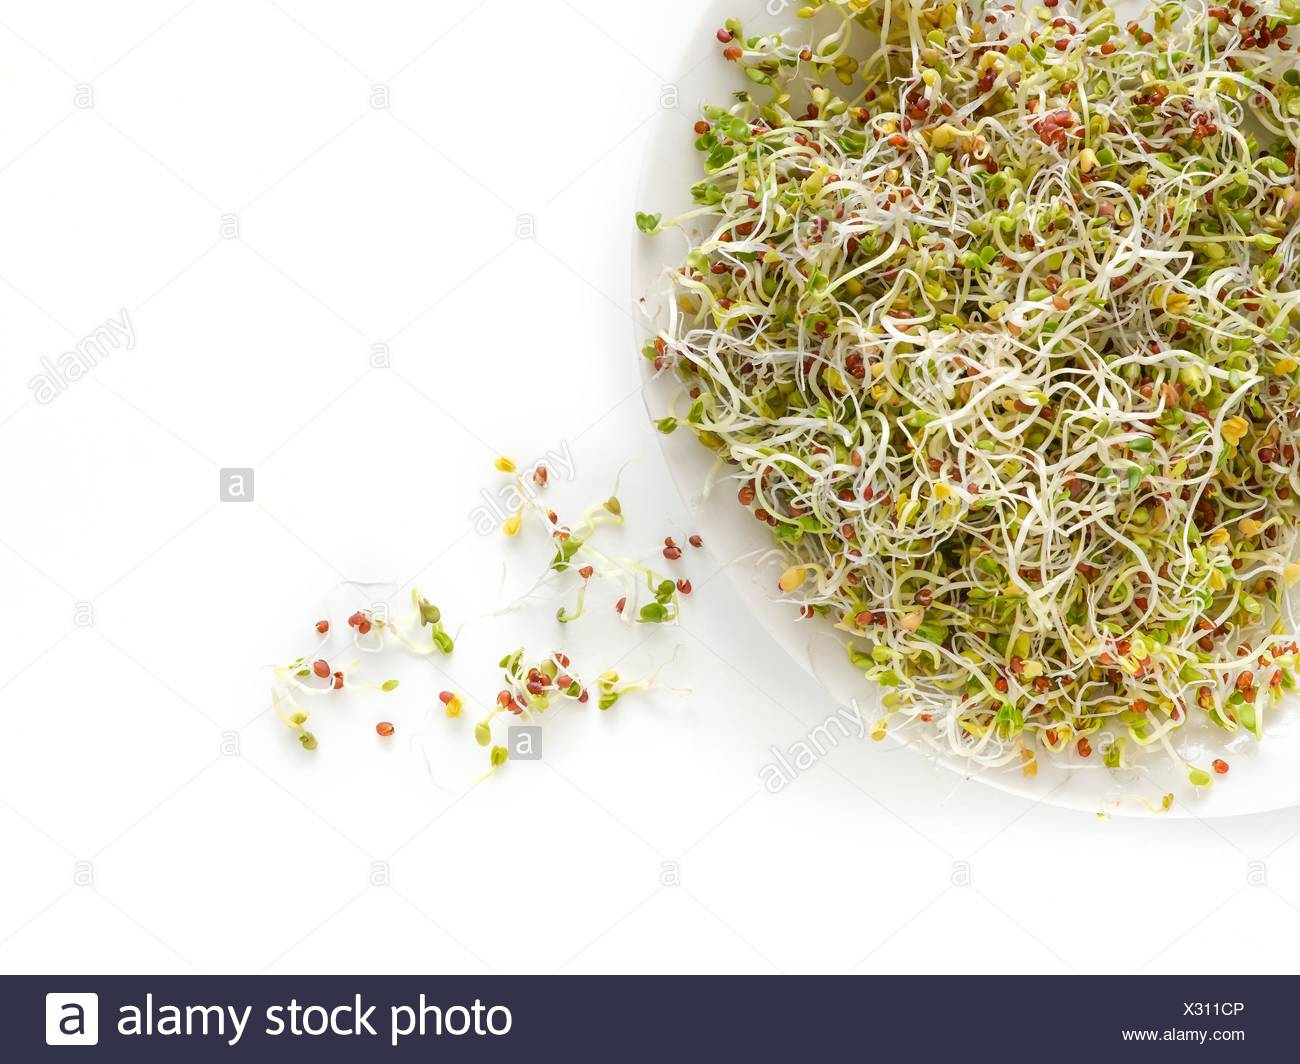 Sprouting brown mustard seeds on a dish. - Stock Image